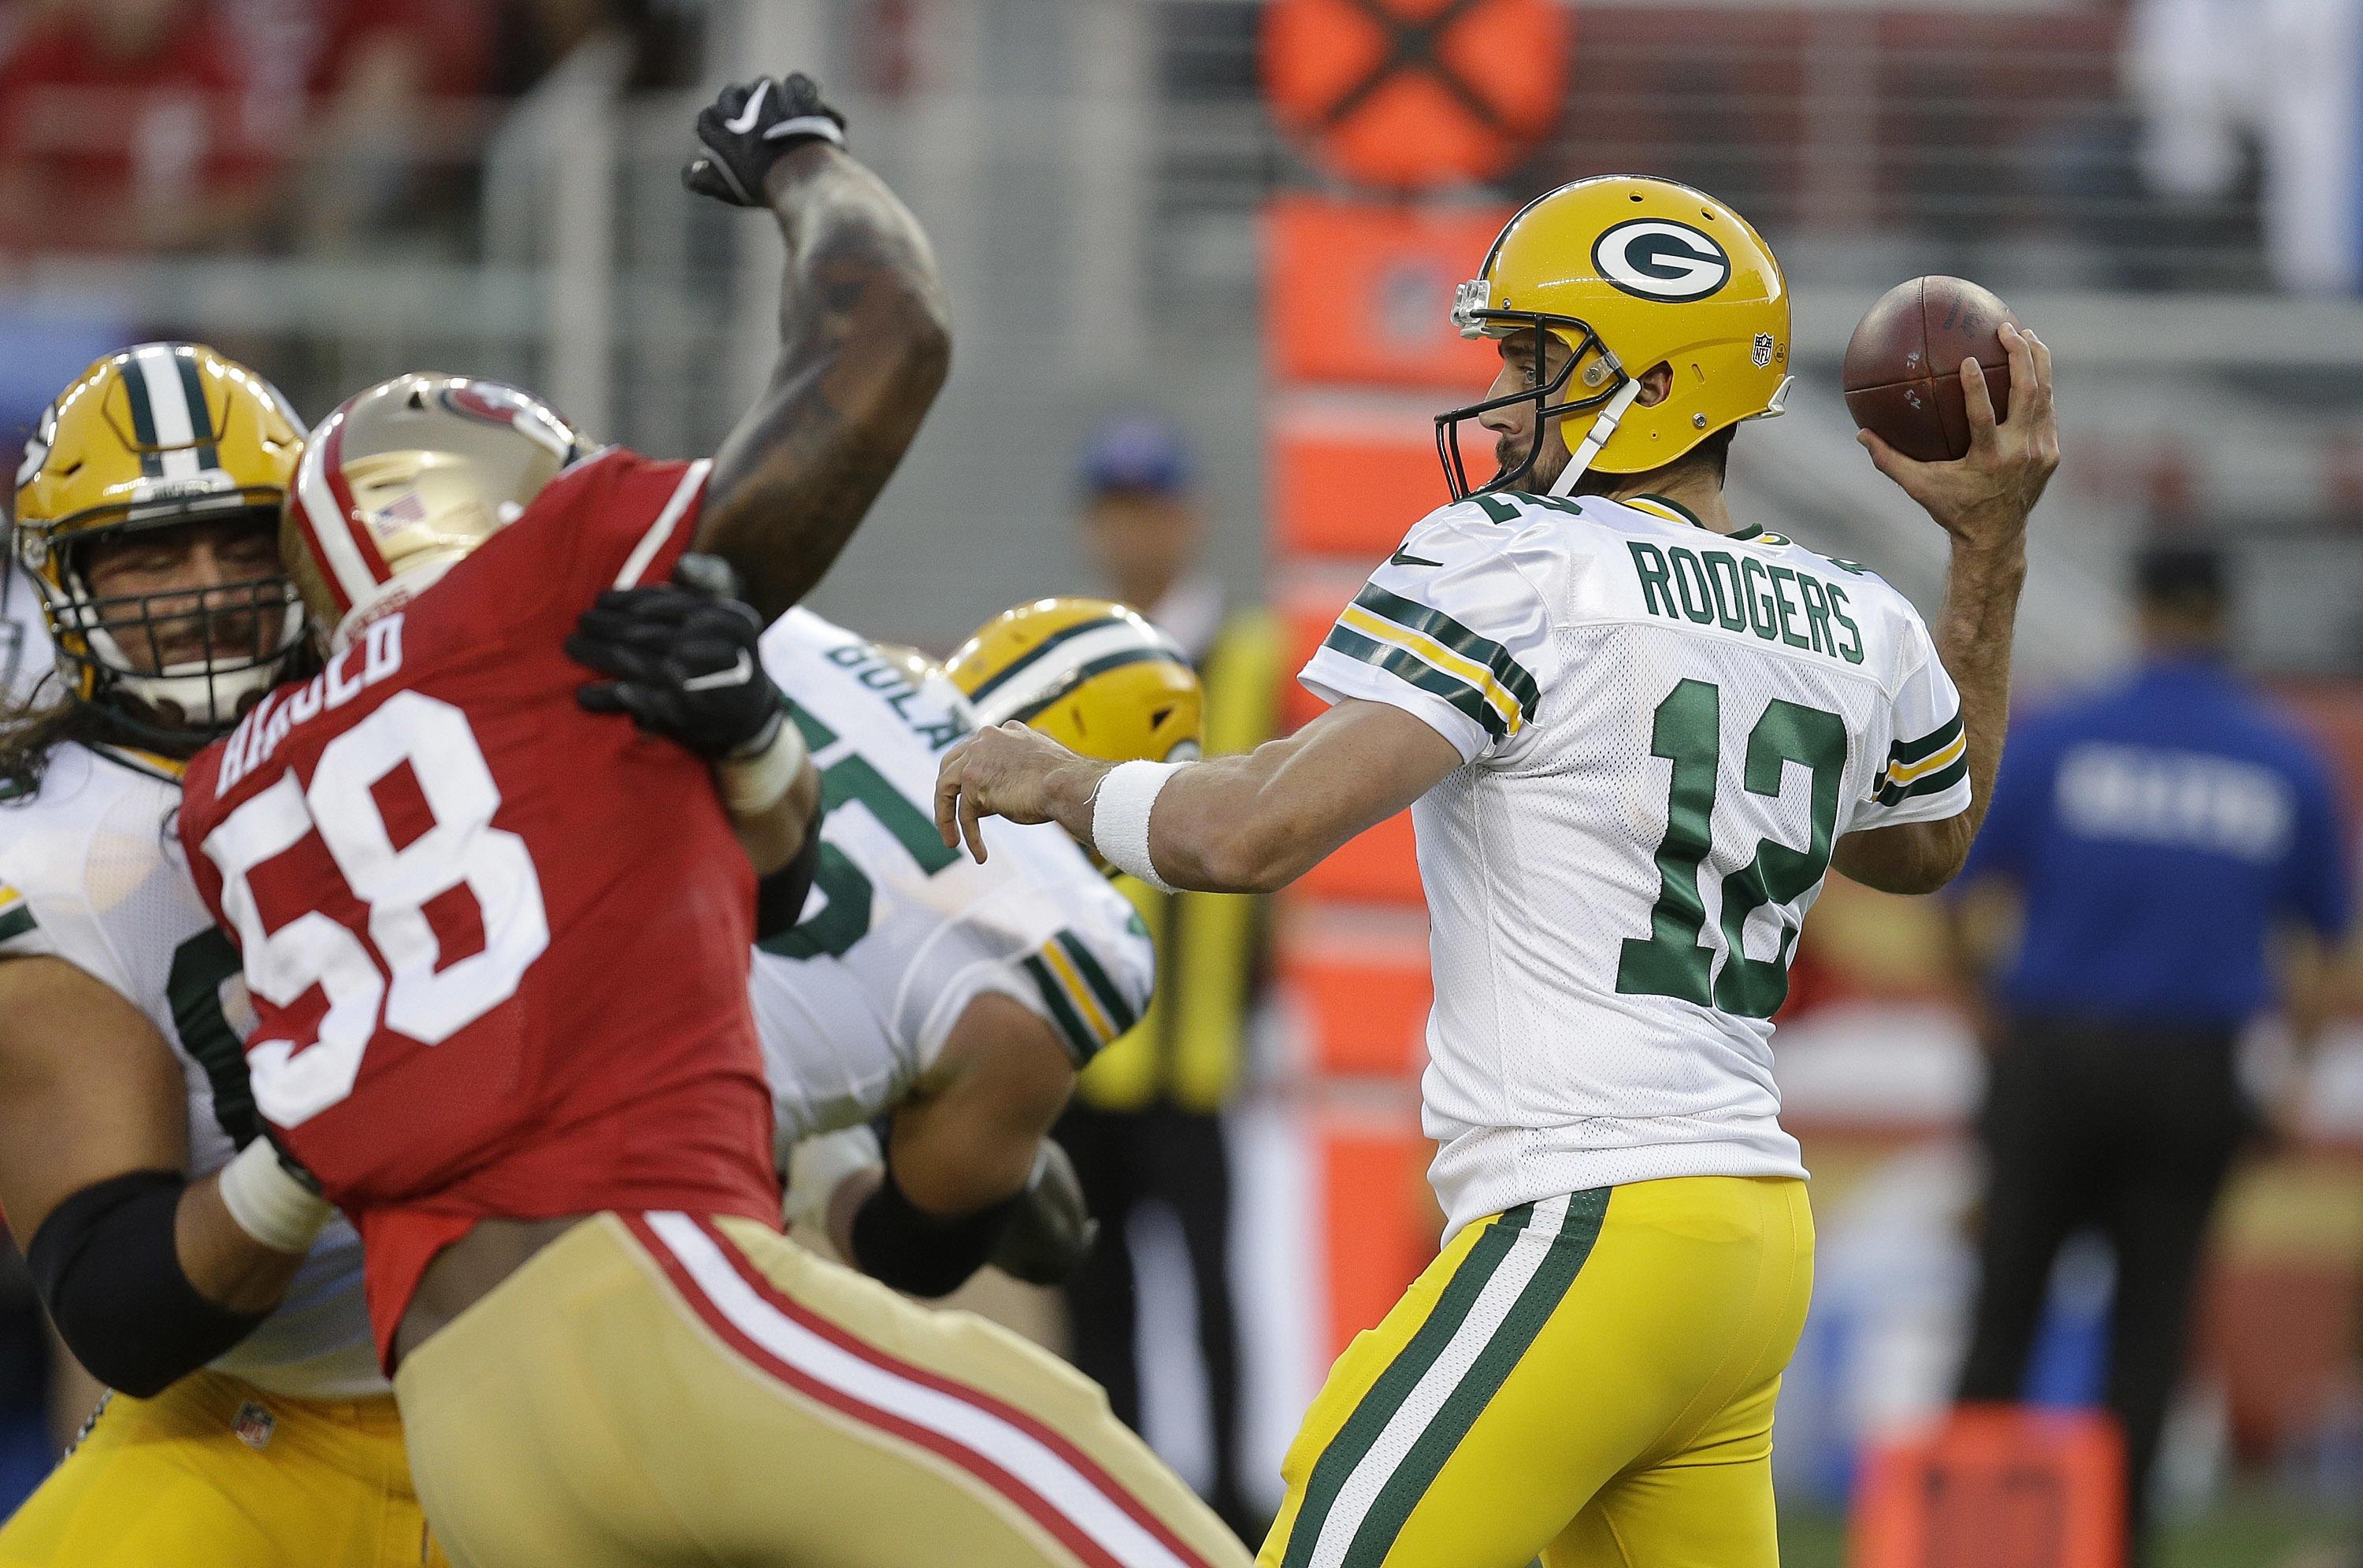 Packers_49ers_football